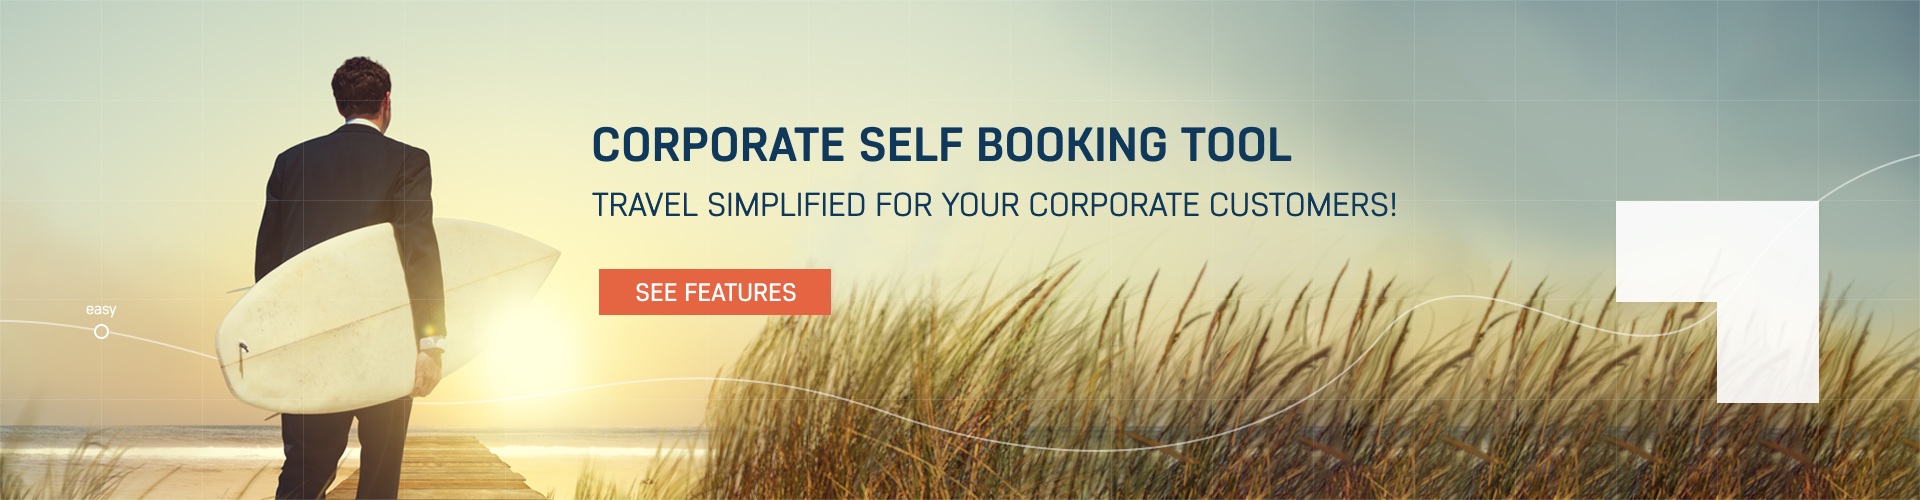 NOVA - Corporate Self Booking Tool